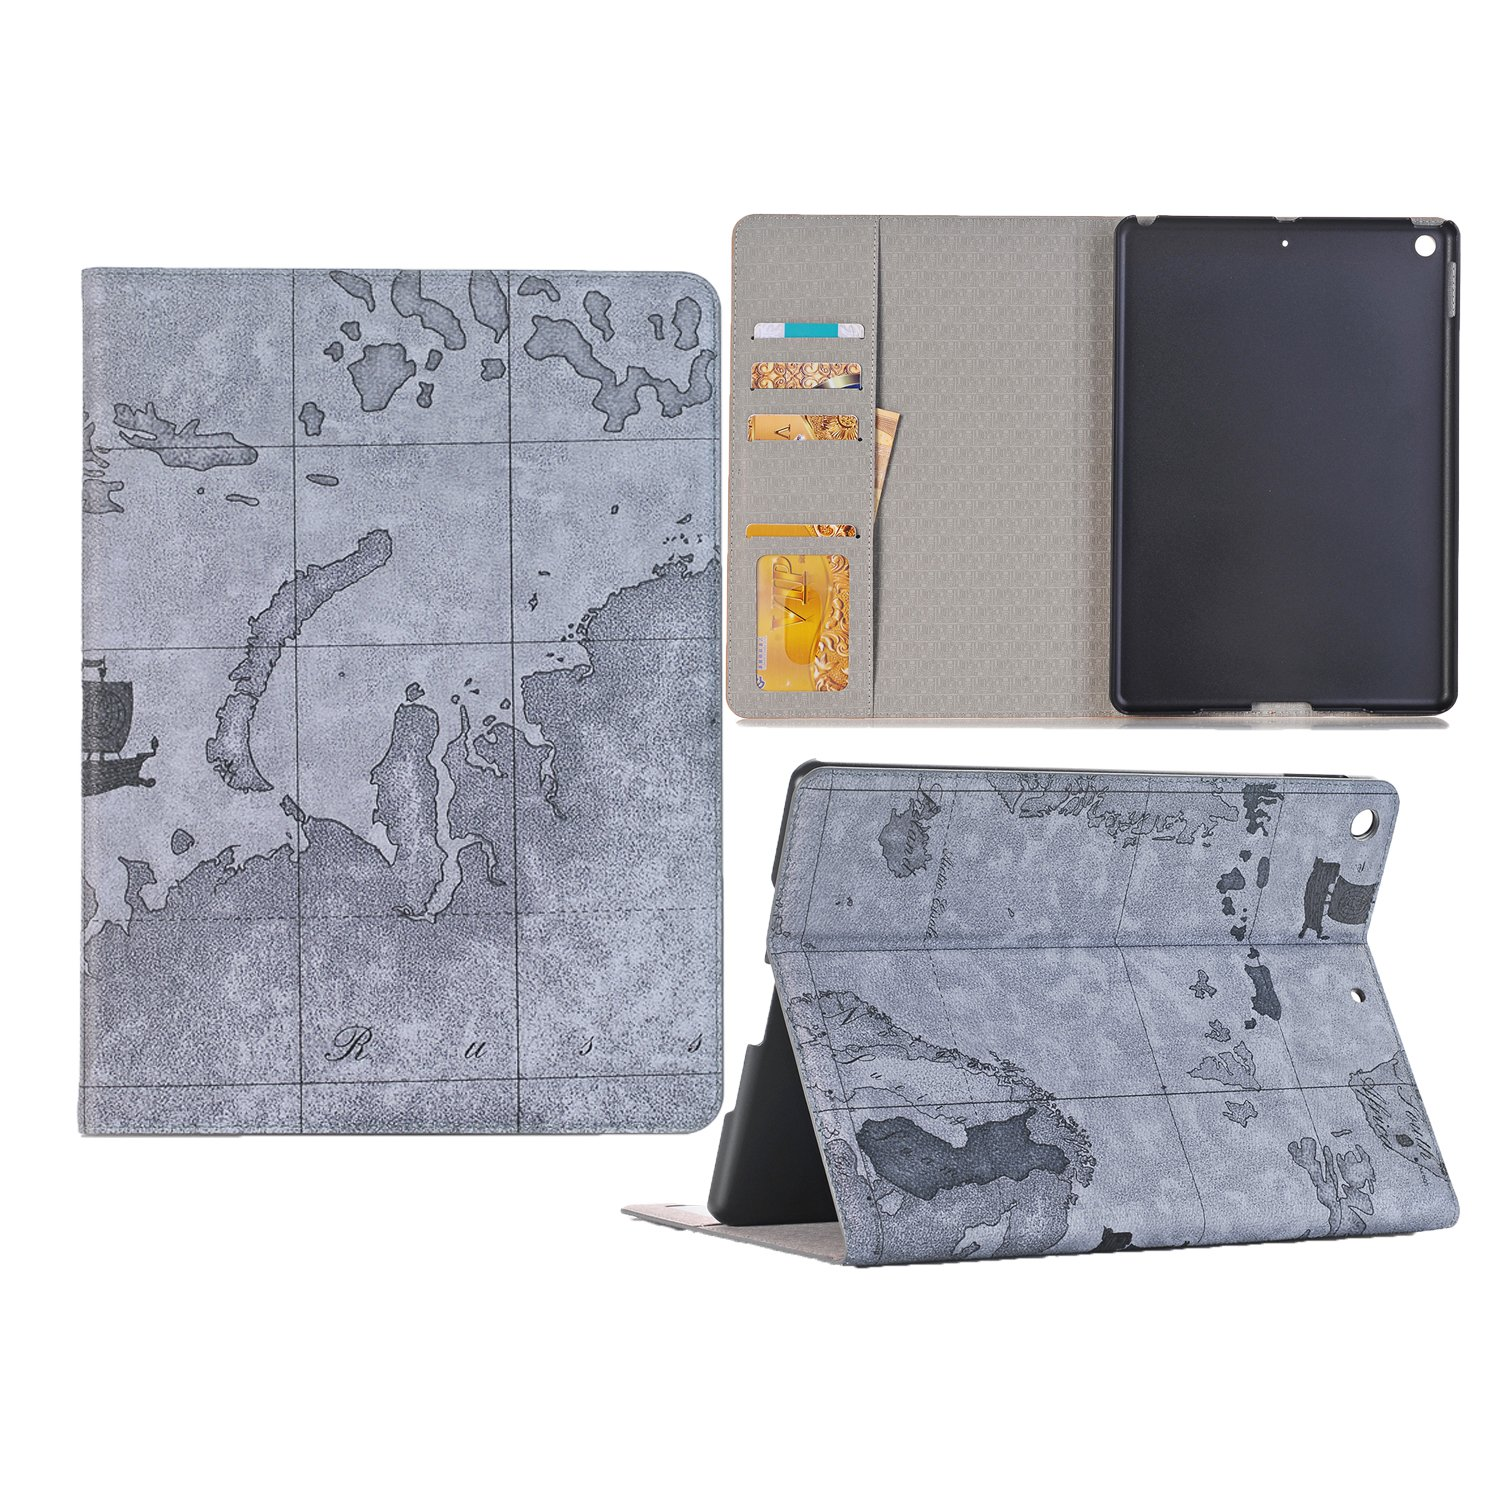 KingTo iPad Pro 9.7 Case, Map Pattern Slim Book Style Stand with Card Slots Screen Protective for iPad Pro 9.7 Inch Tablet - Gray